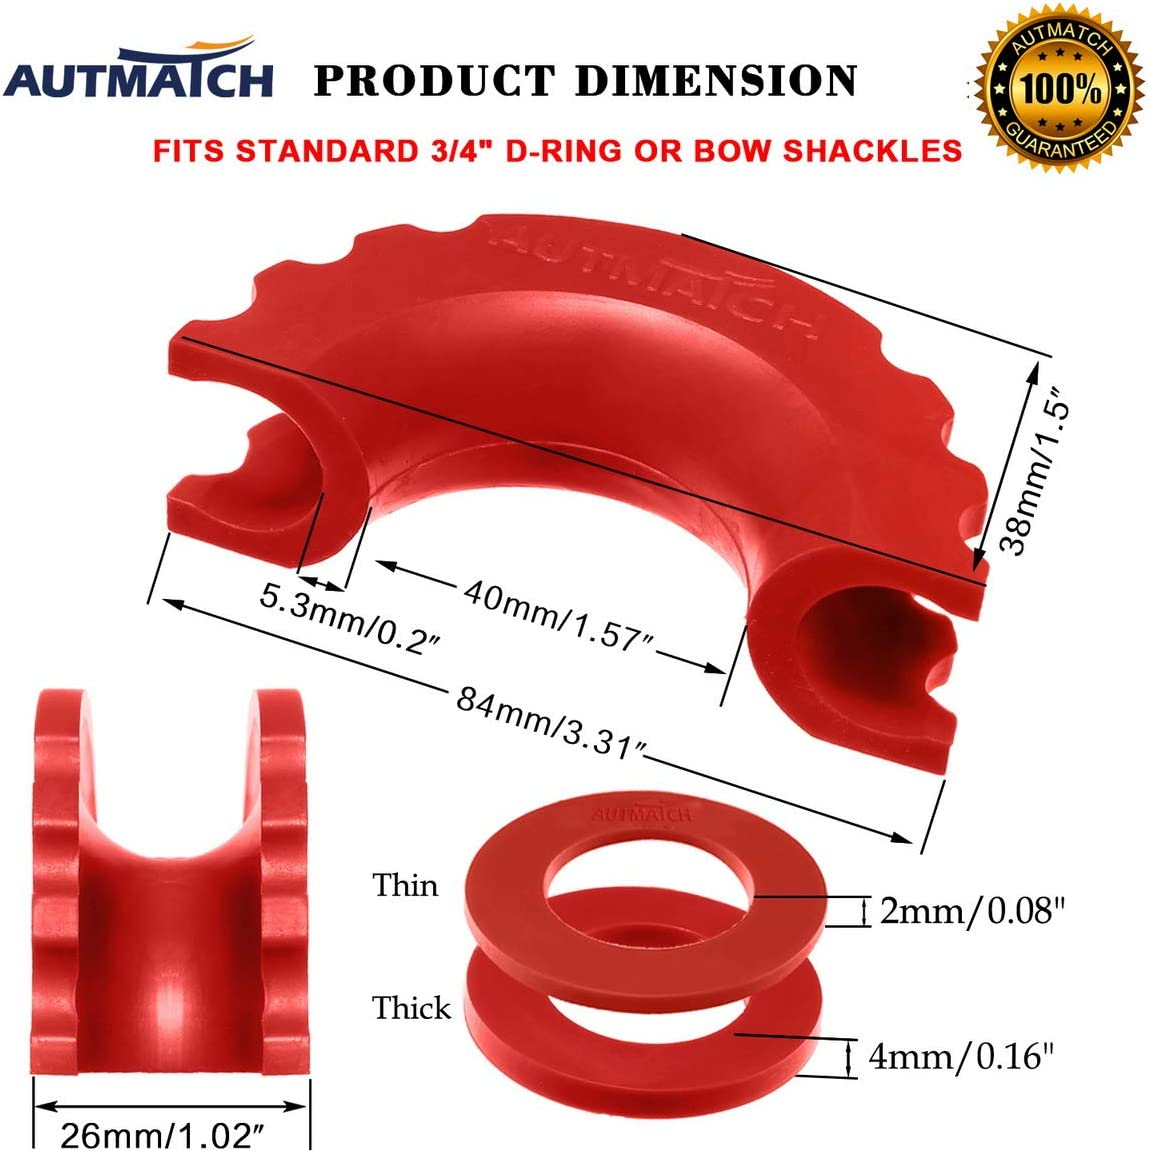 AUTMATCH Pack of 2 D-Ring Shackle Isolators Washers Kit 2 Rubber Shackle Isolators and 4 Washers Fits 3//4 Inch Shackle Gear Design Rattling Protection Shackle Cover Orange